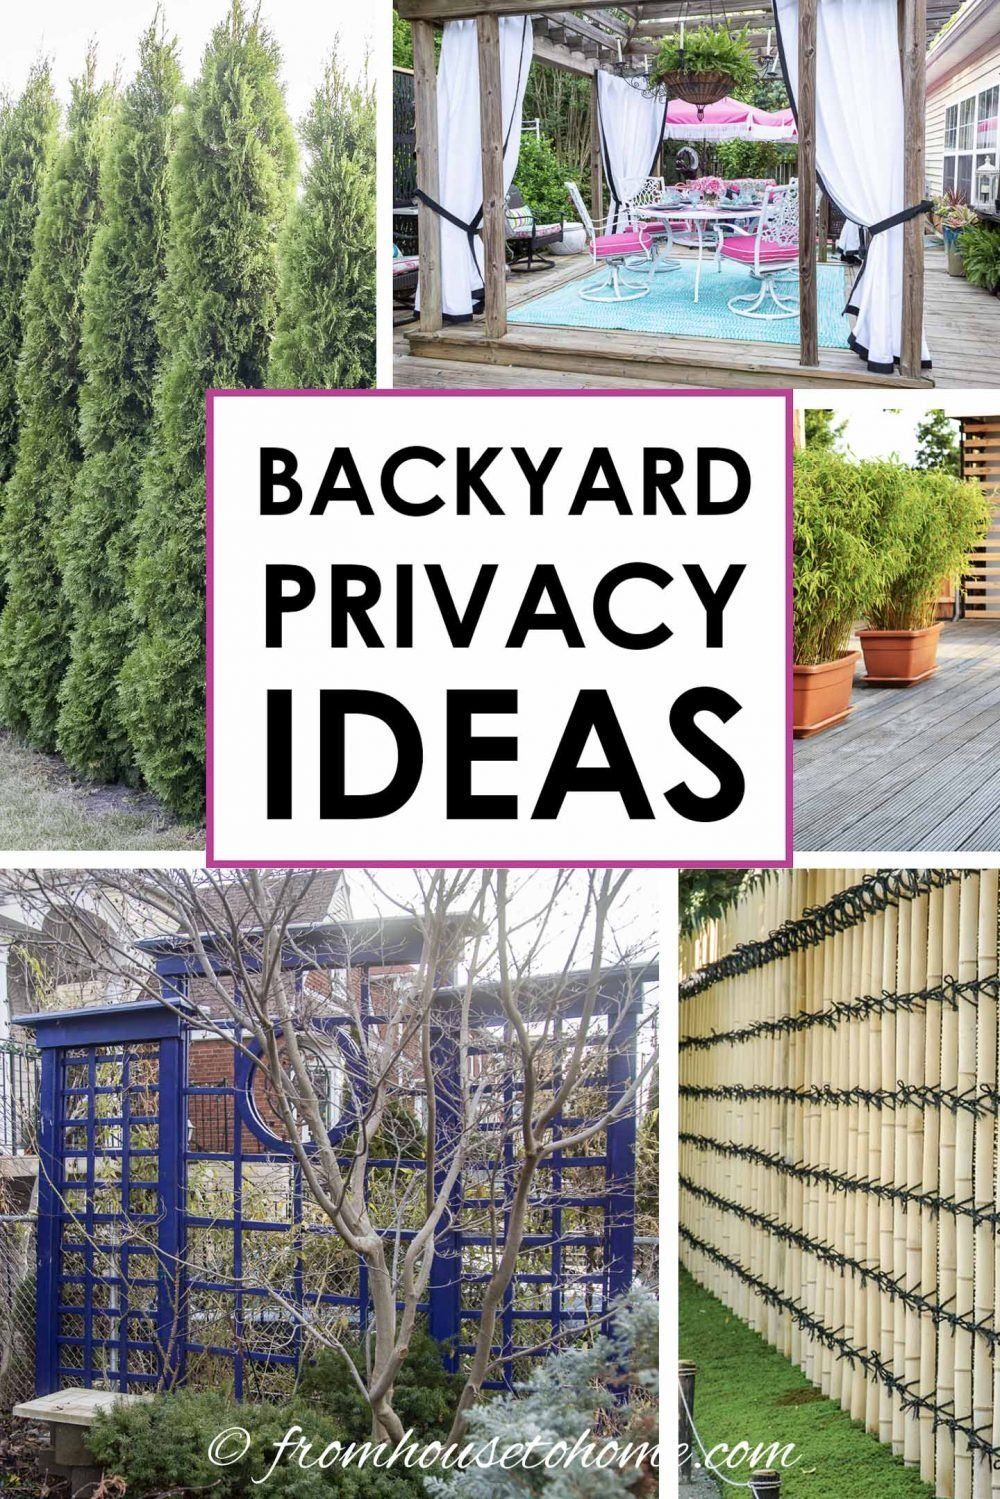 Backyard Privacy Ideas For Screening Neighbors Out Gardening From House To Home Backyard Privacy Privacy Screen Outdoor Outdoor Privacy